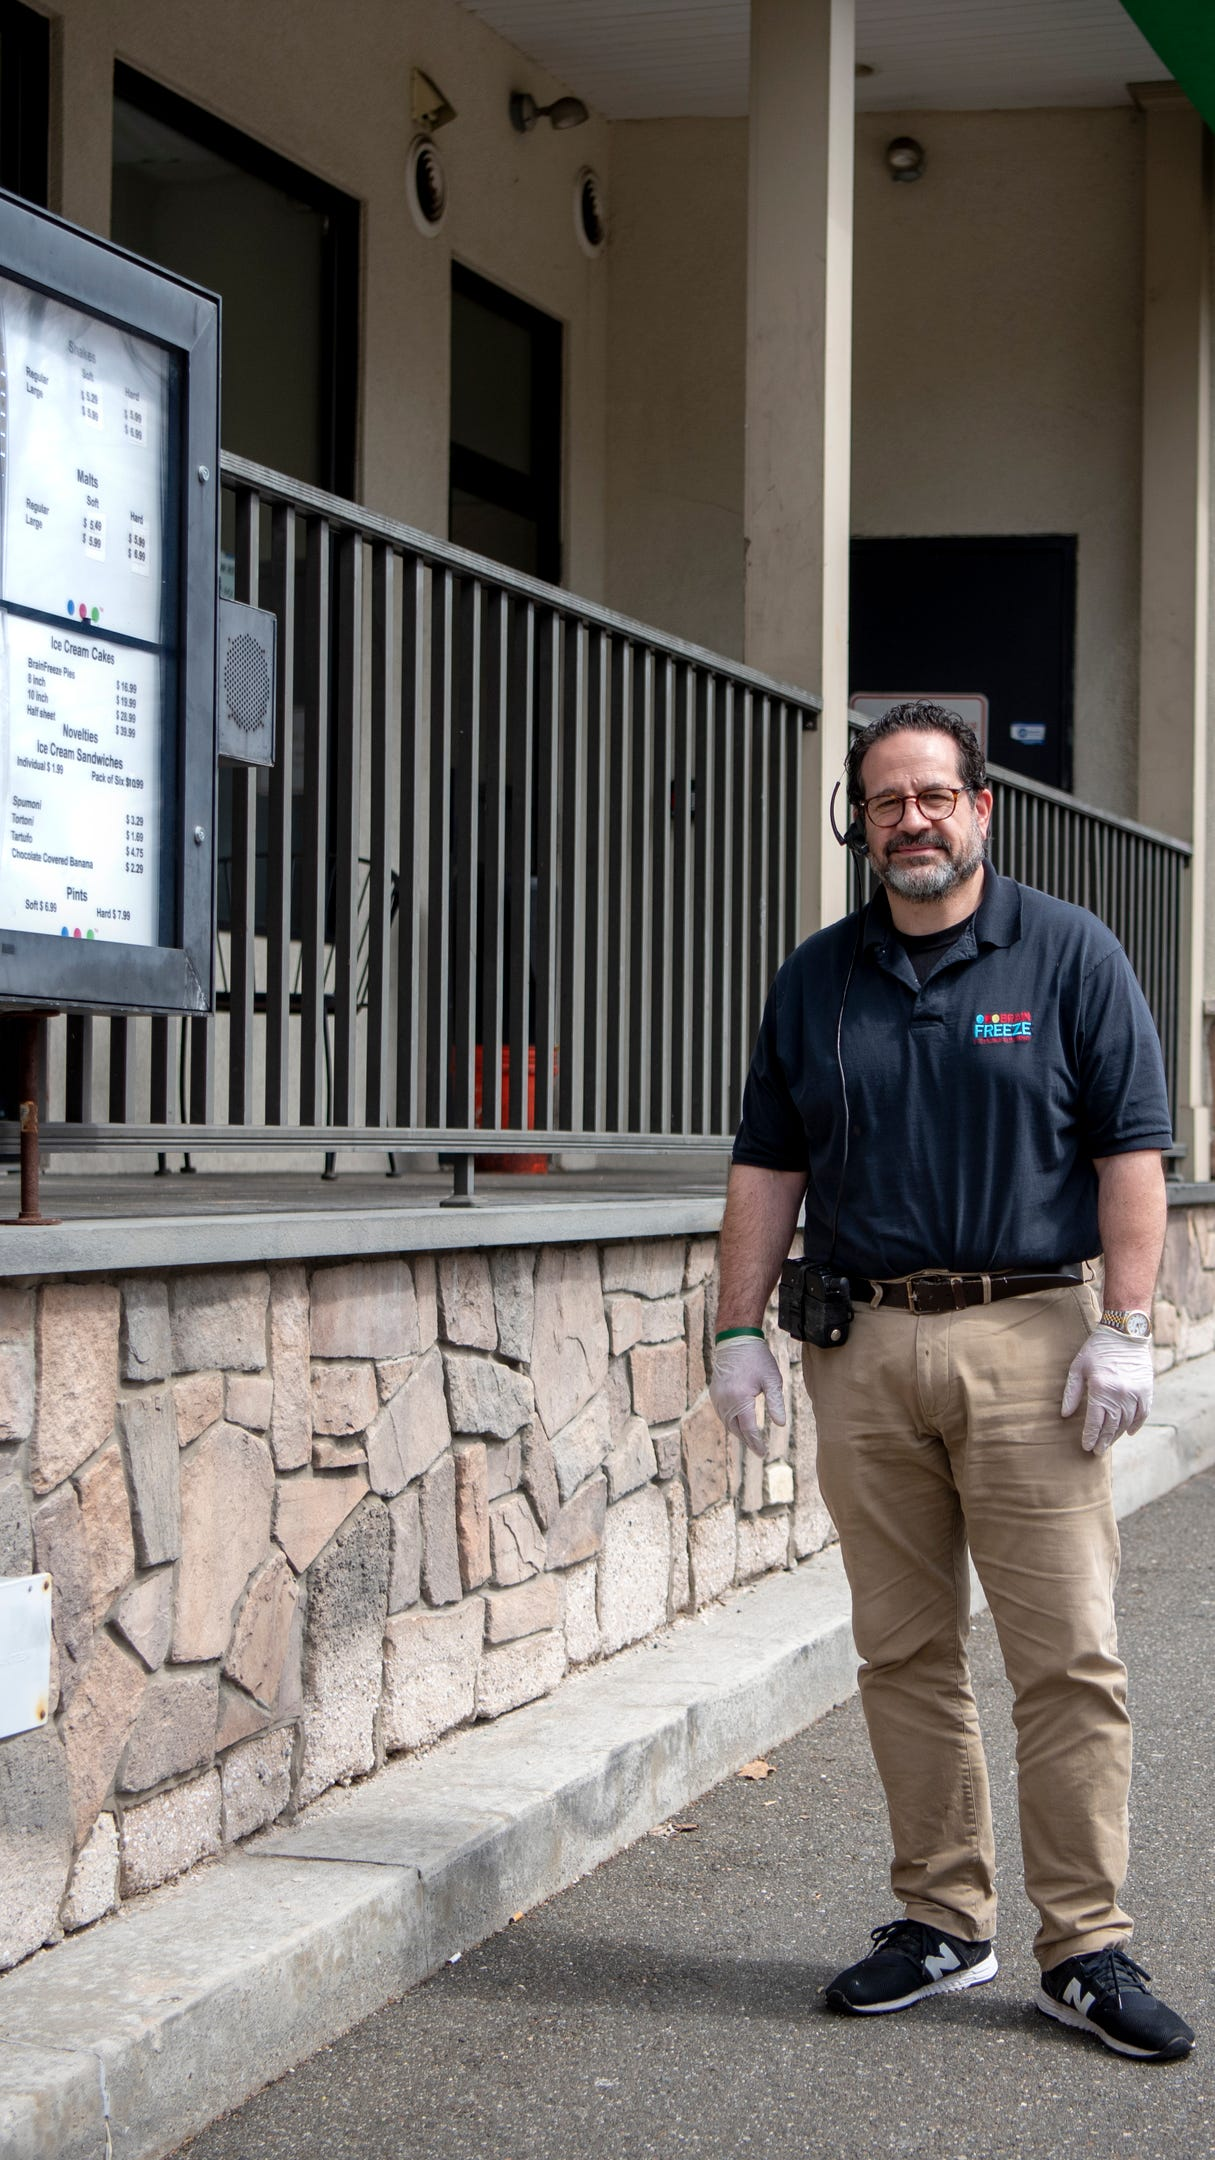 New Milford Ice Cream Store Shifts To Drive Thru Only Business During Coronavirus Pandemic Usa tus poderes para romper el hielo para romper. mpnnow com